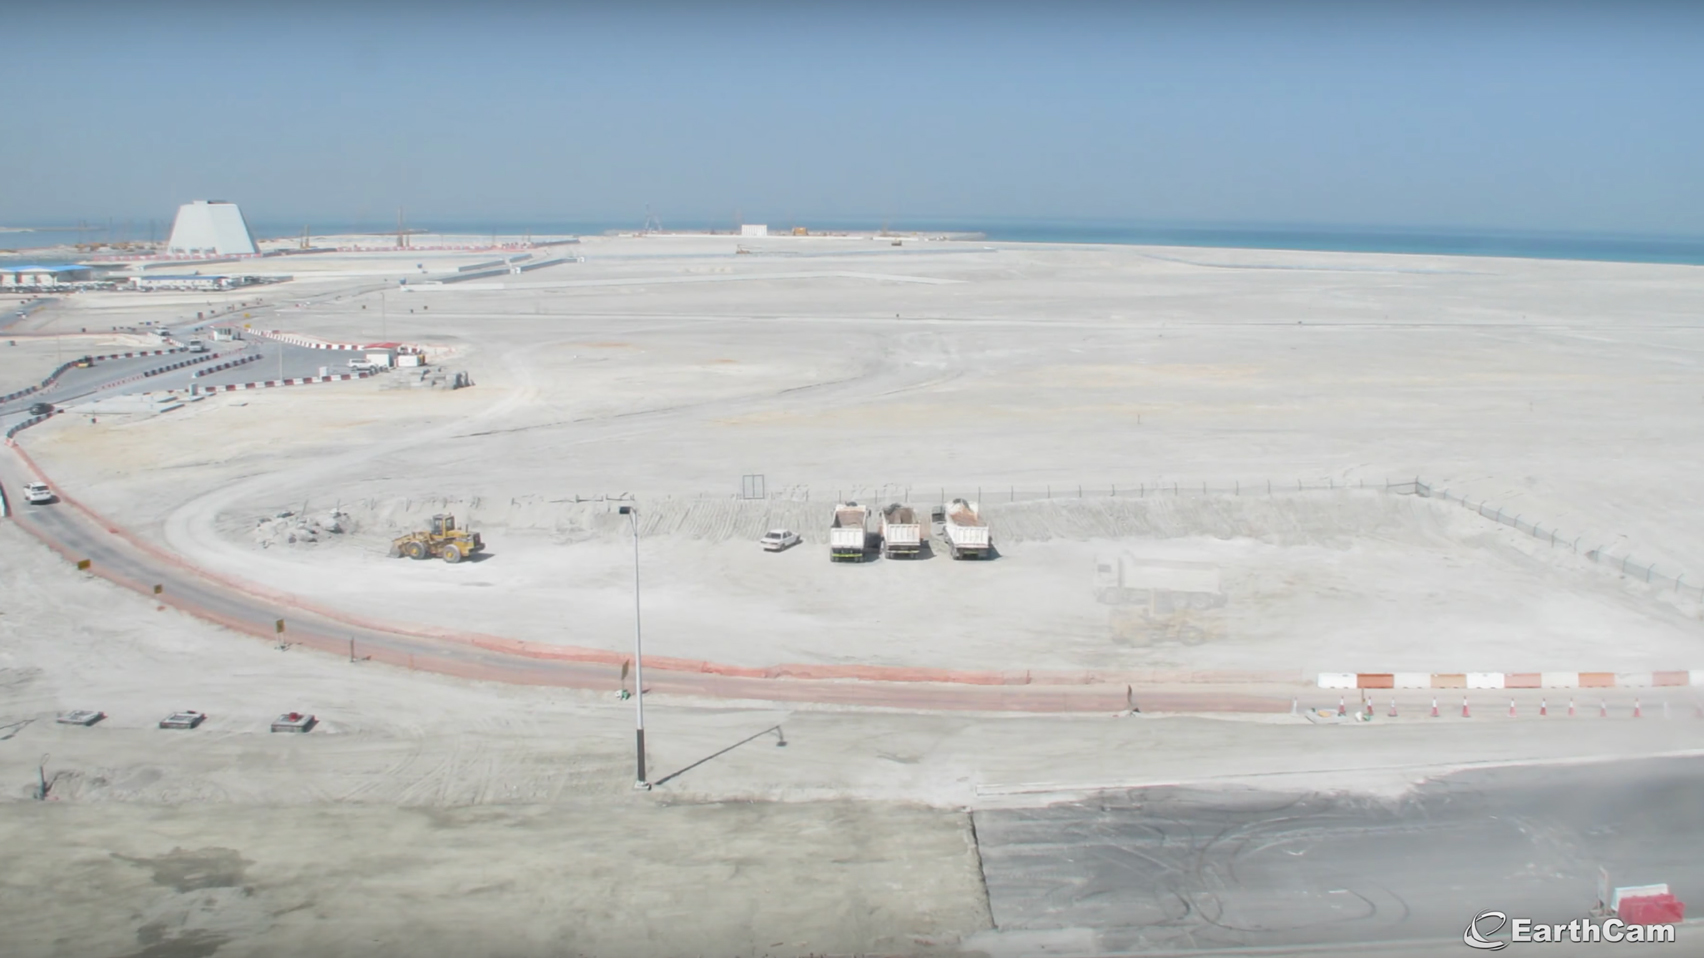 Timelapse reveals eight-year construction of Louvre Abu Dubai in just three minutes